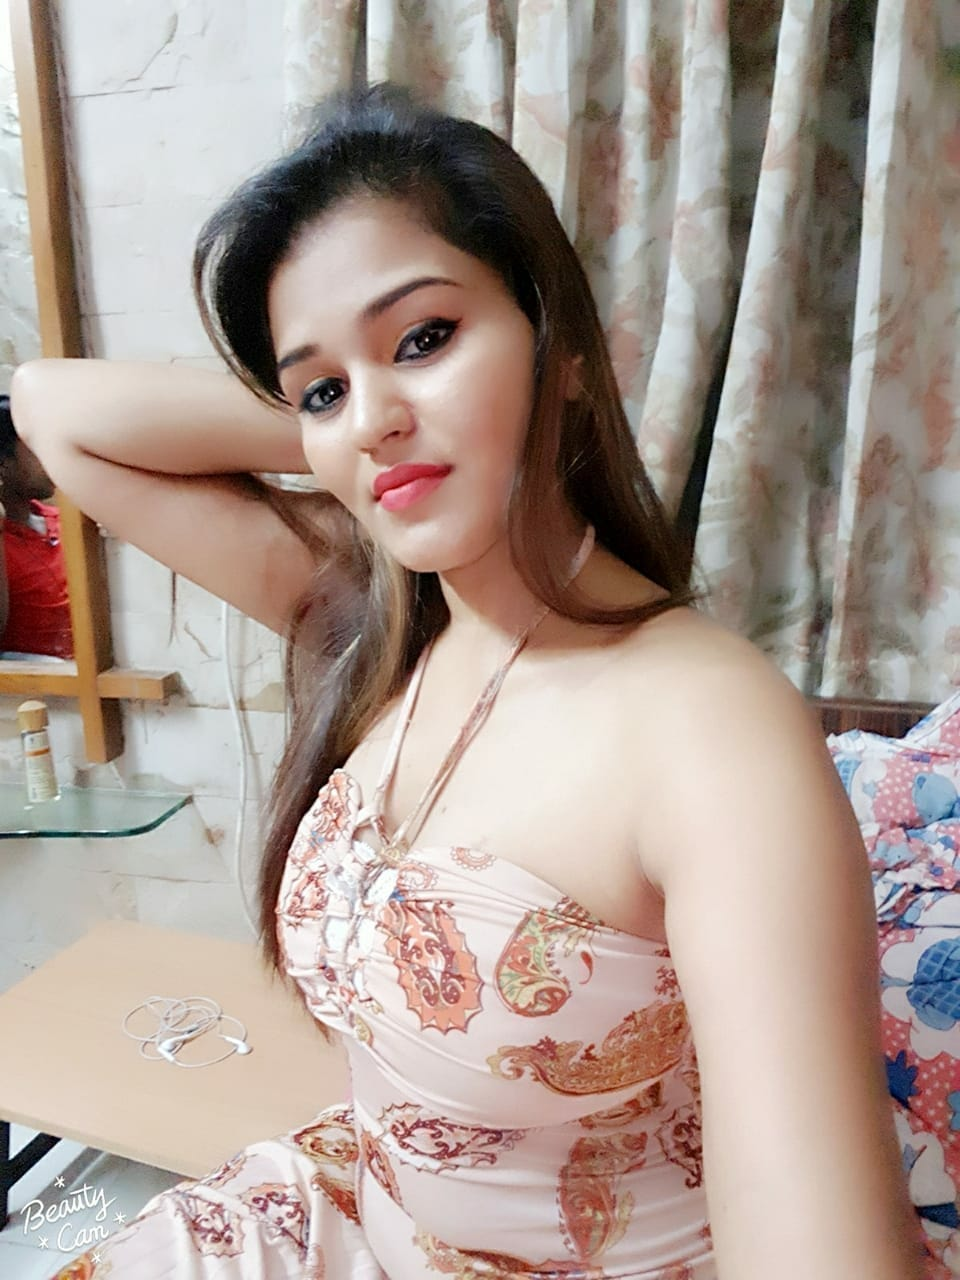 Russian Escorts In  Matunga